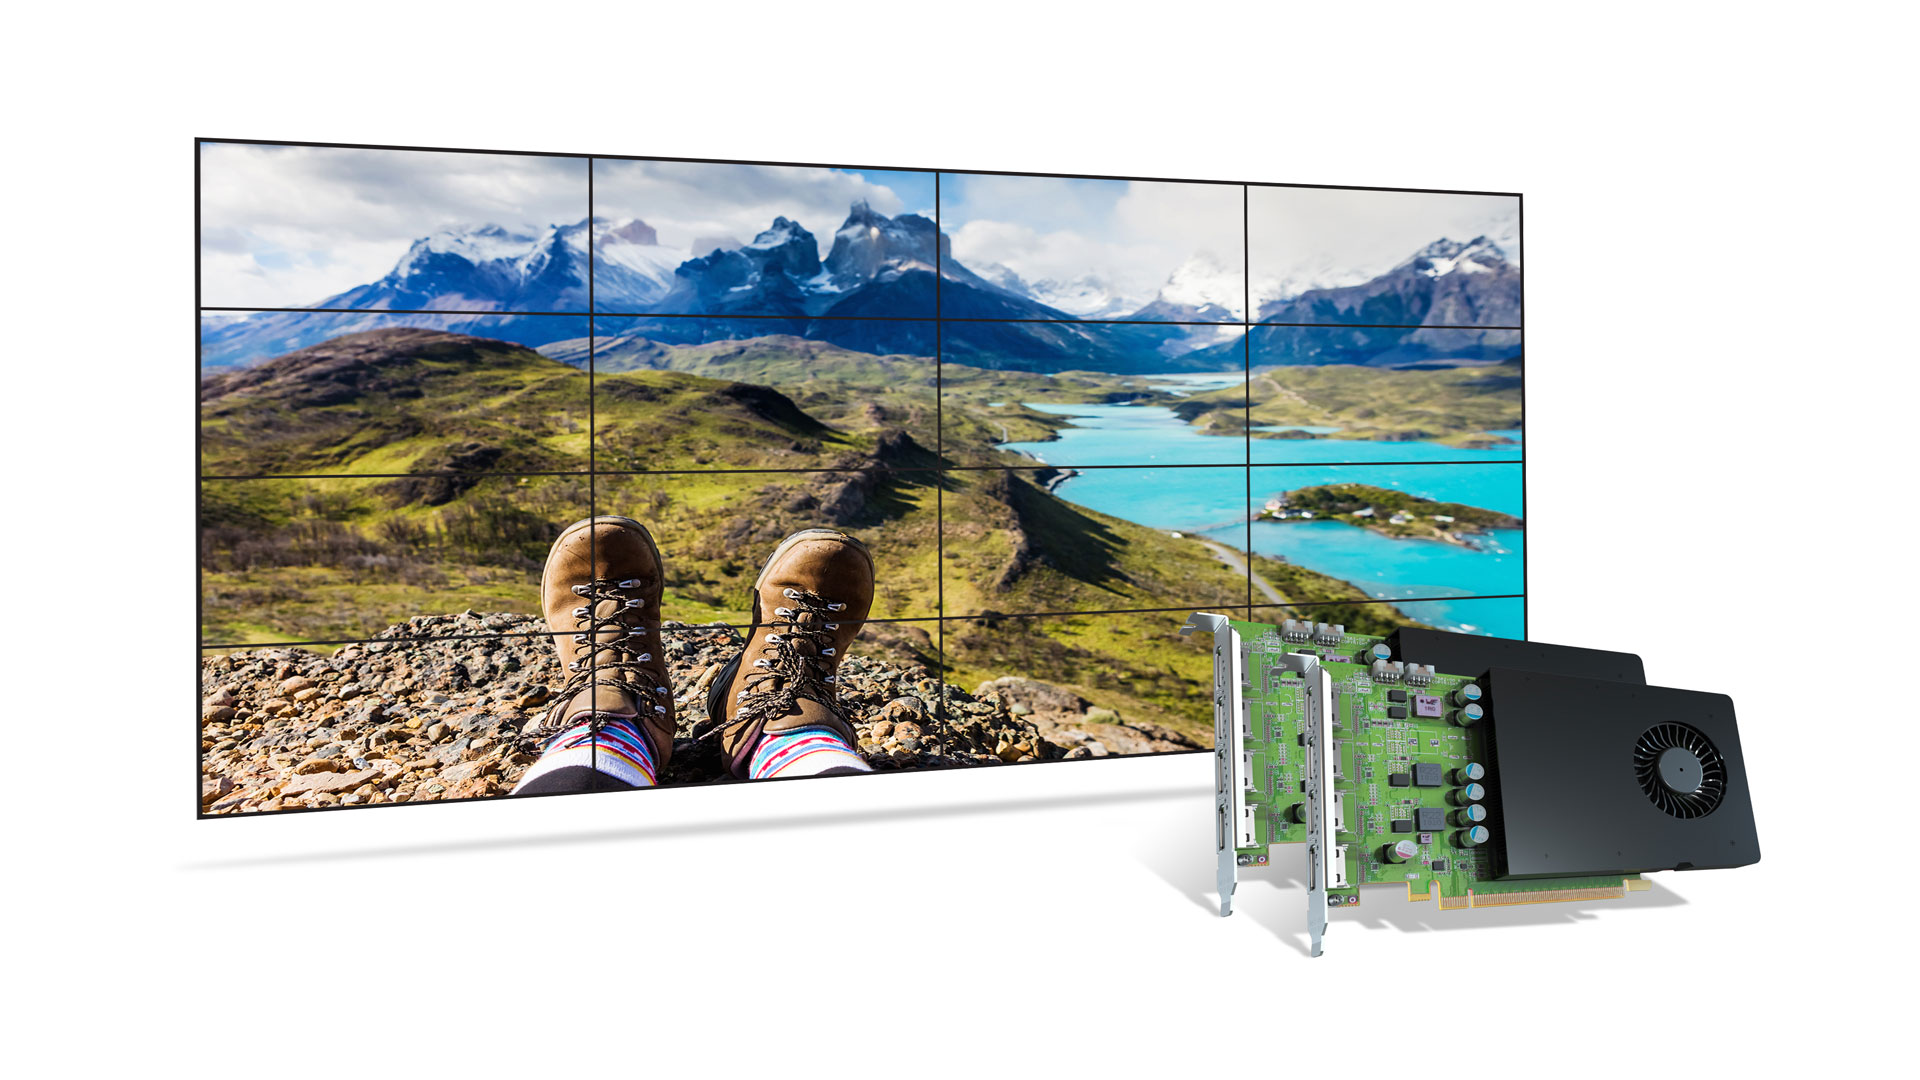 Matrox D1480 Video Wall Card